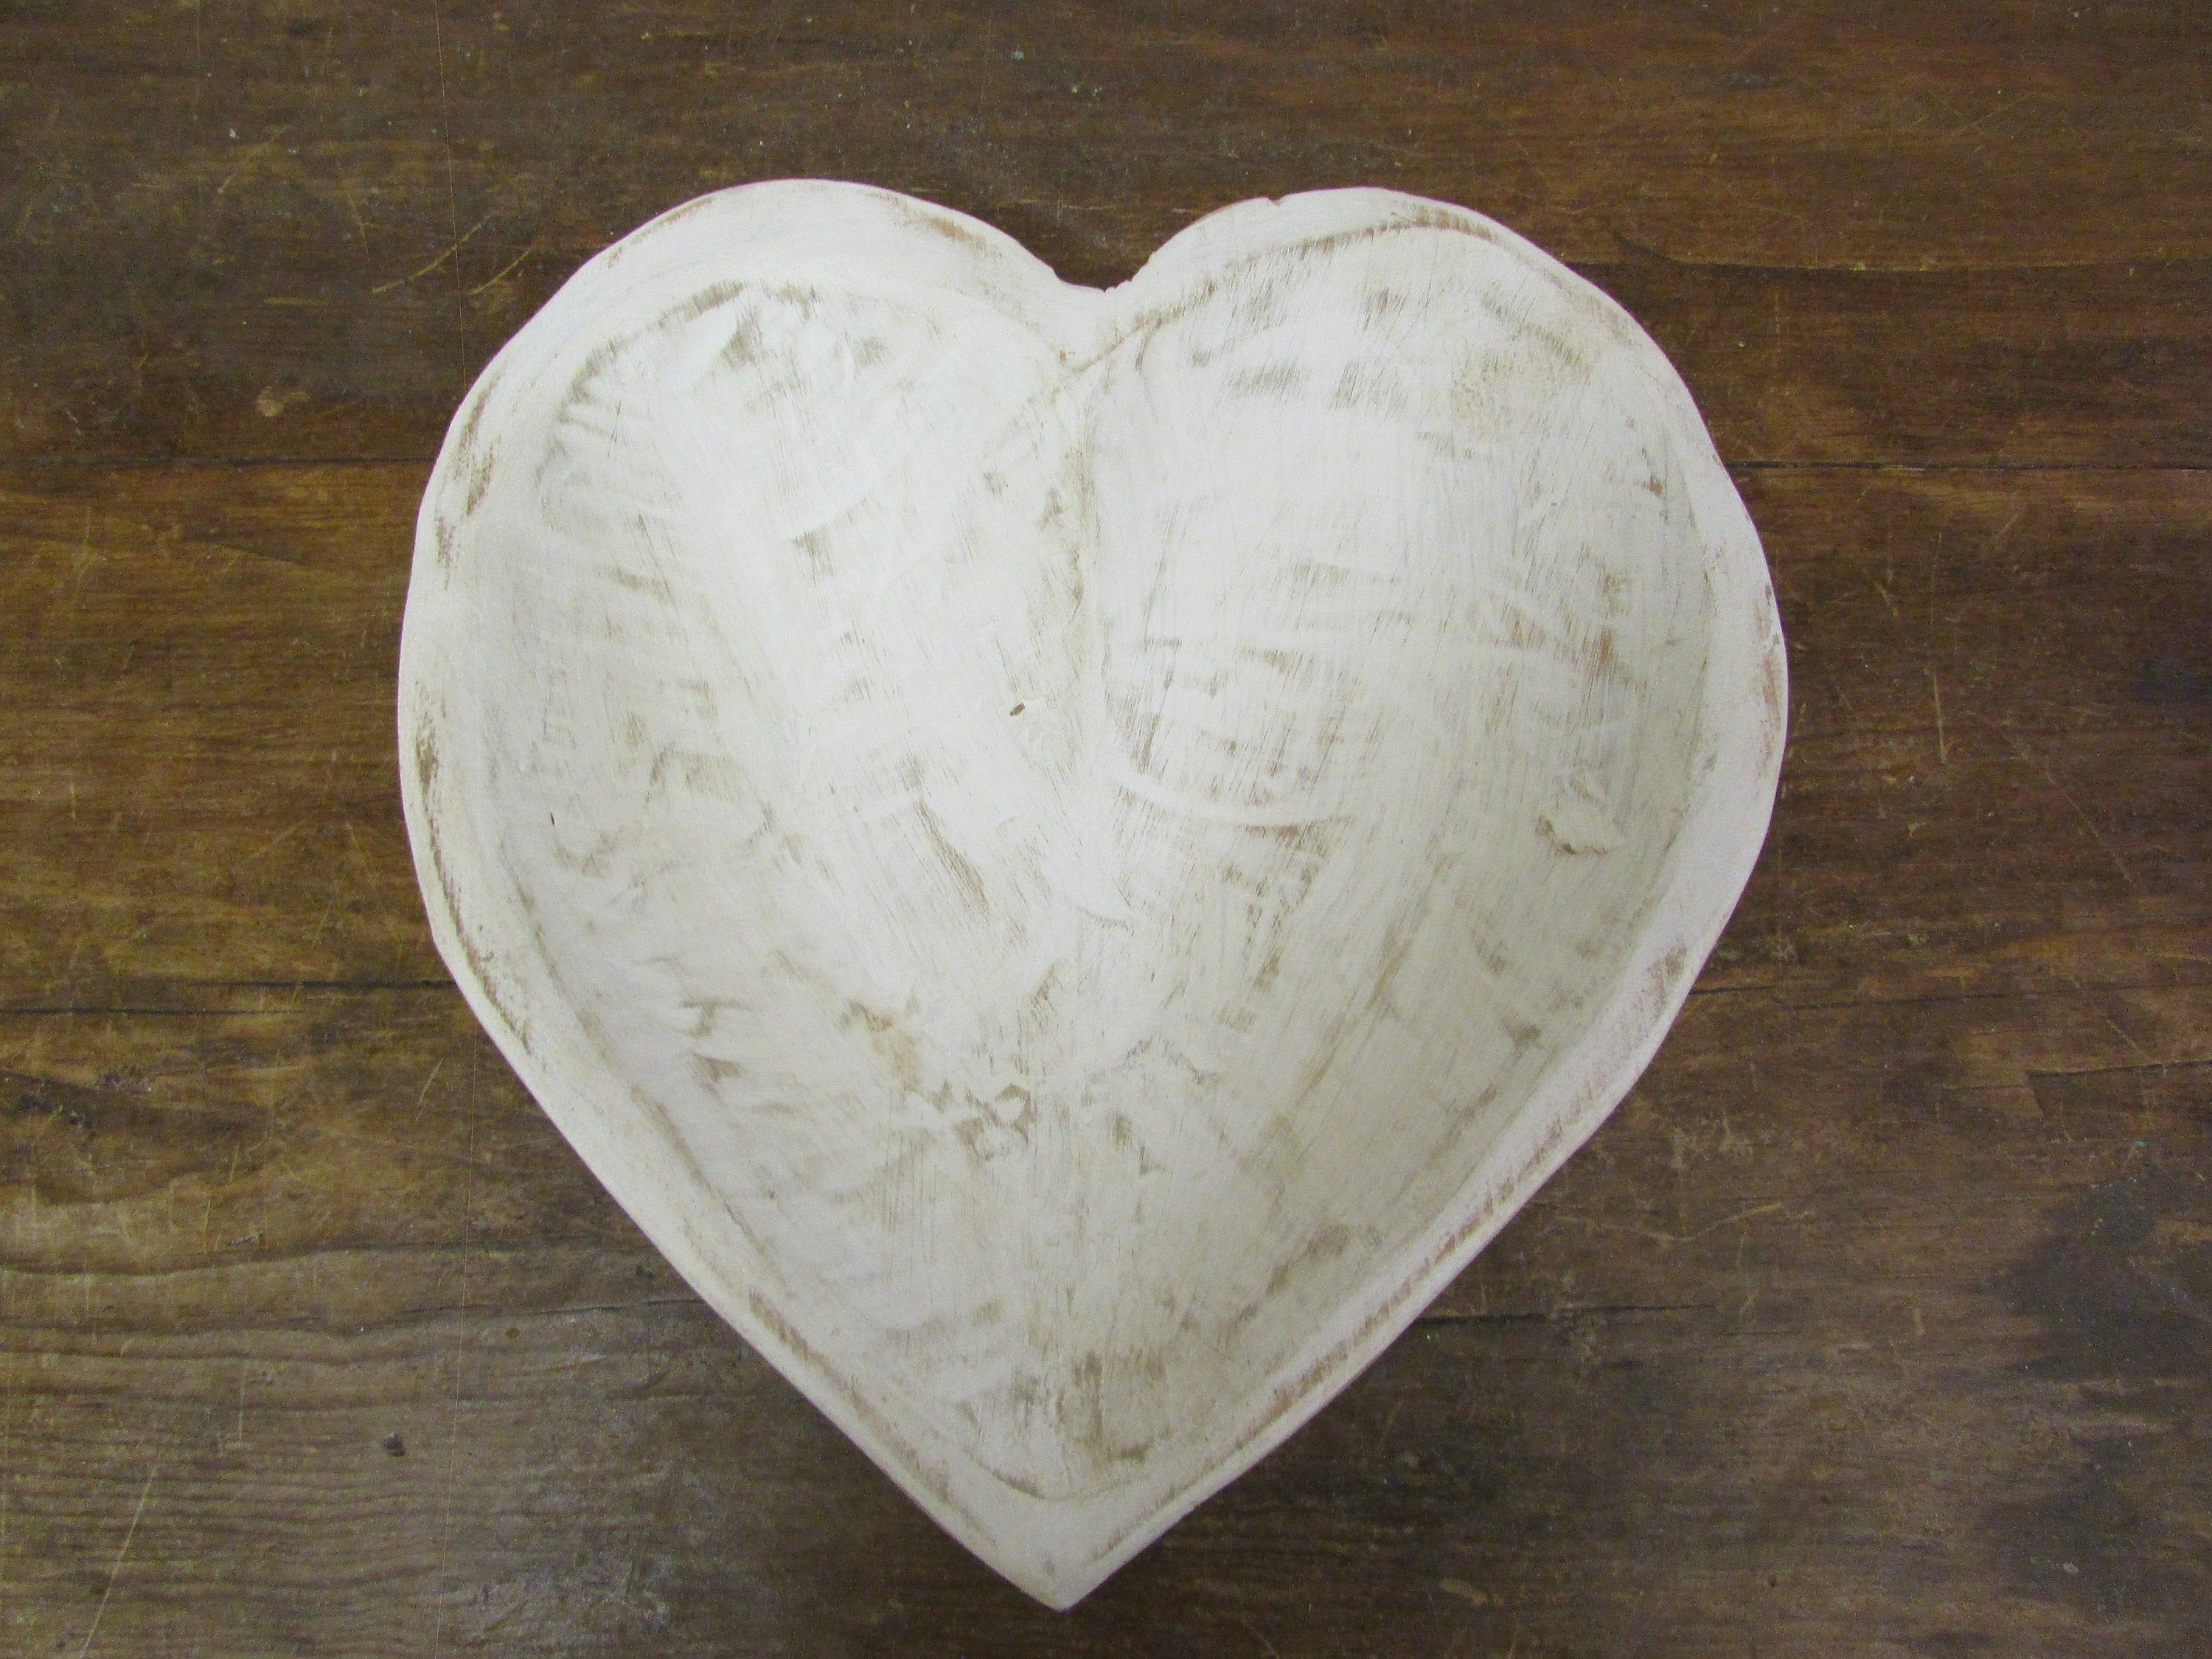 Hand Carved Small Rustic Wooden Heart Dough Bowl 5 Batea Doughboard Doughbowl 11 5x12 5x3 Inches New Pure White Wooden Hearts Hand Carved Dough Bowl